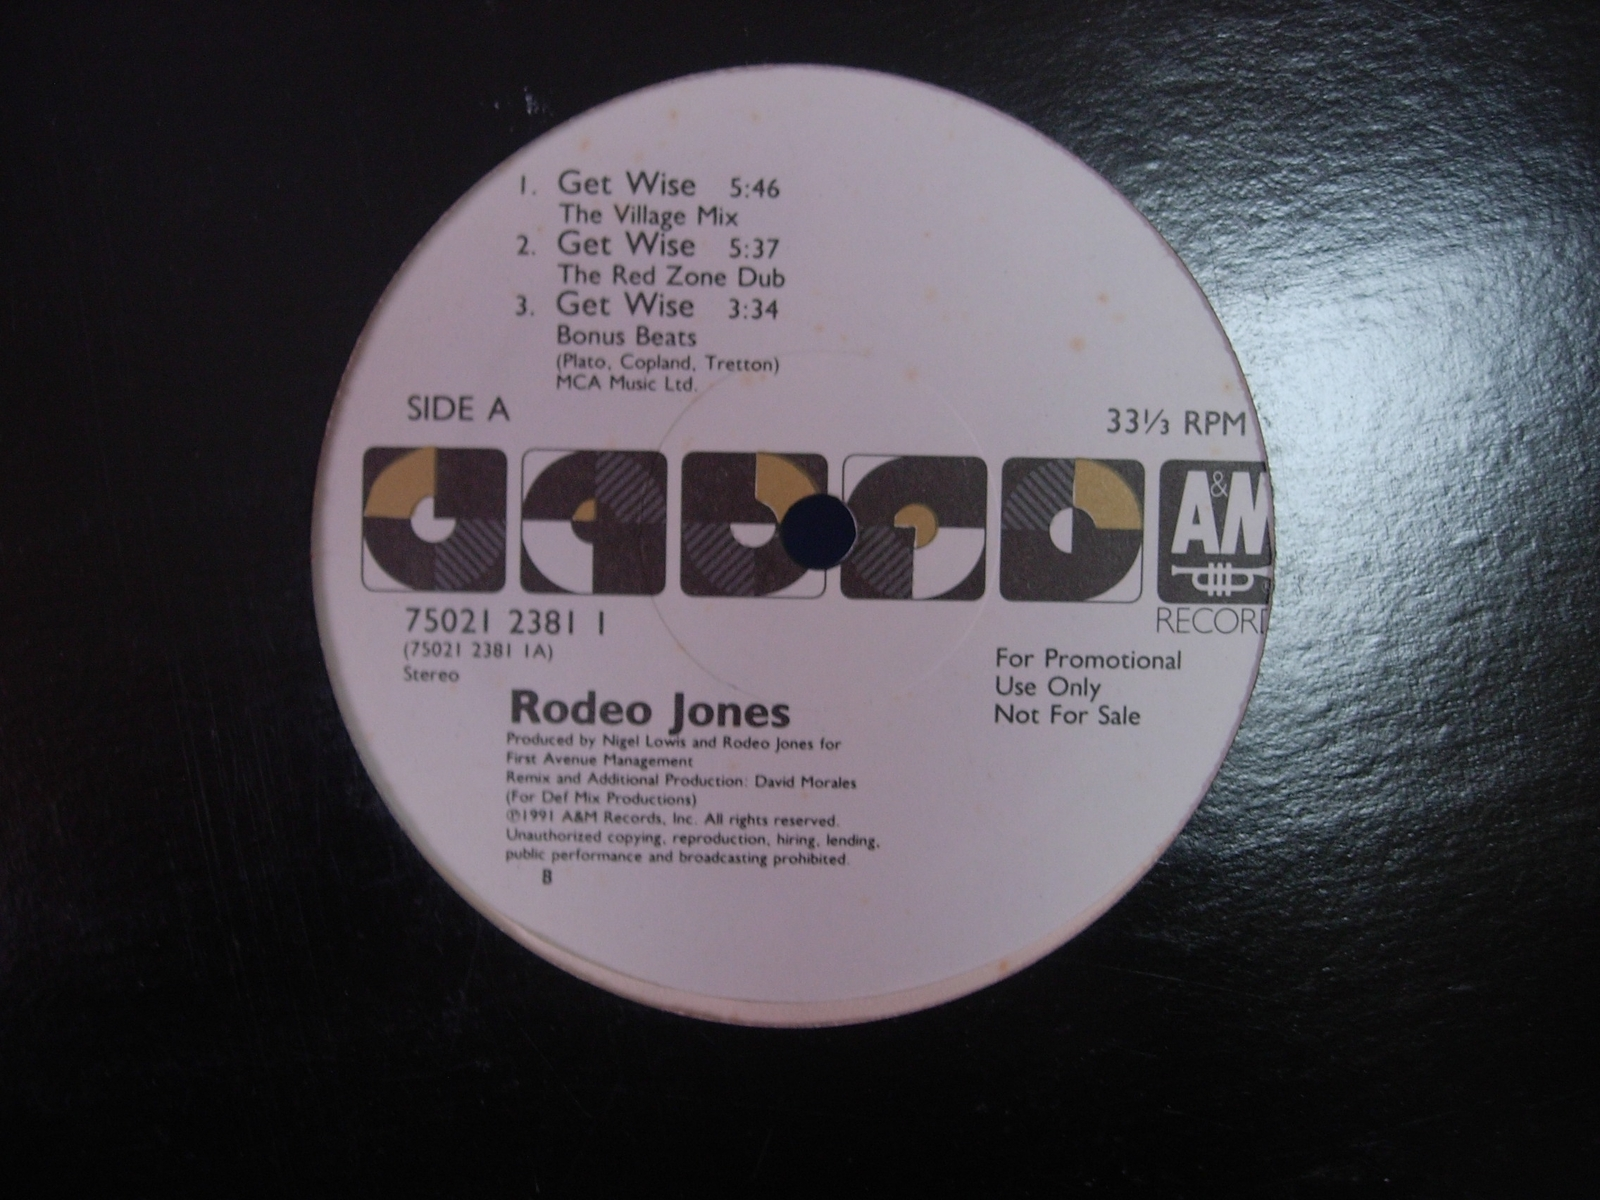 Rodeo Jones - Get Wise - A&M 75021 2381 - Promo